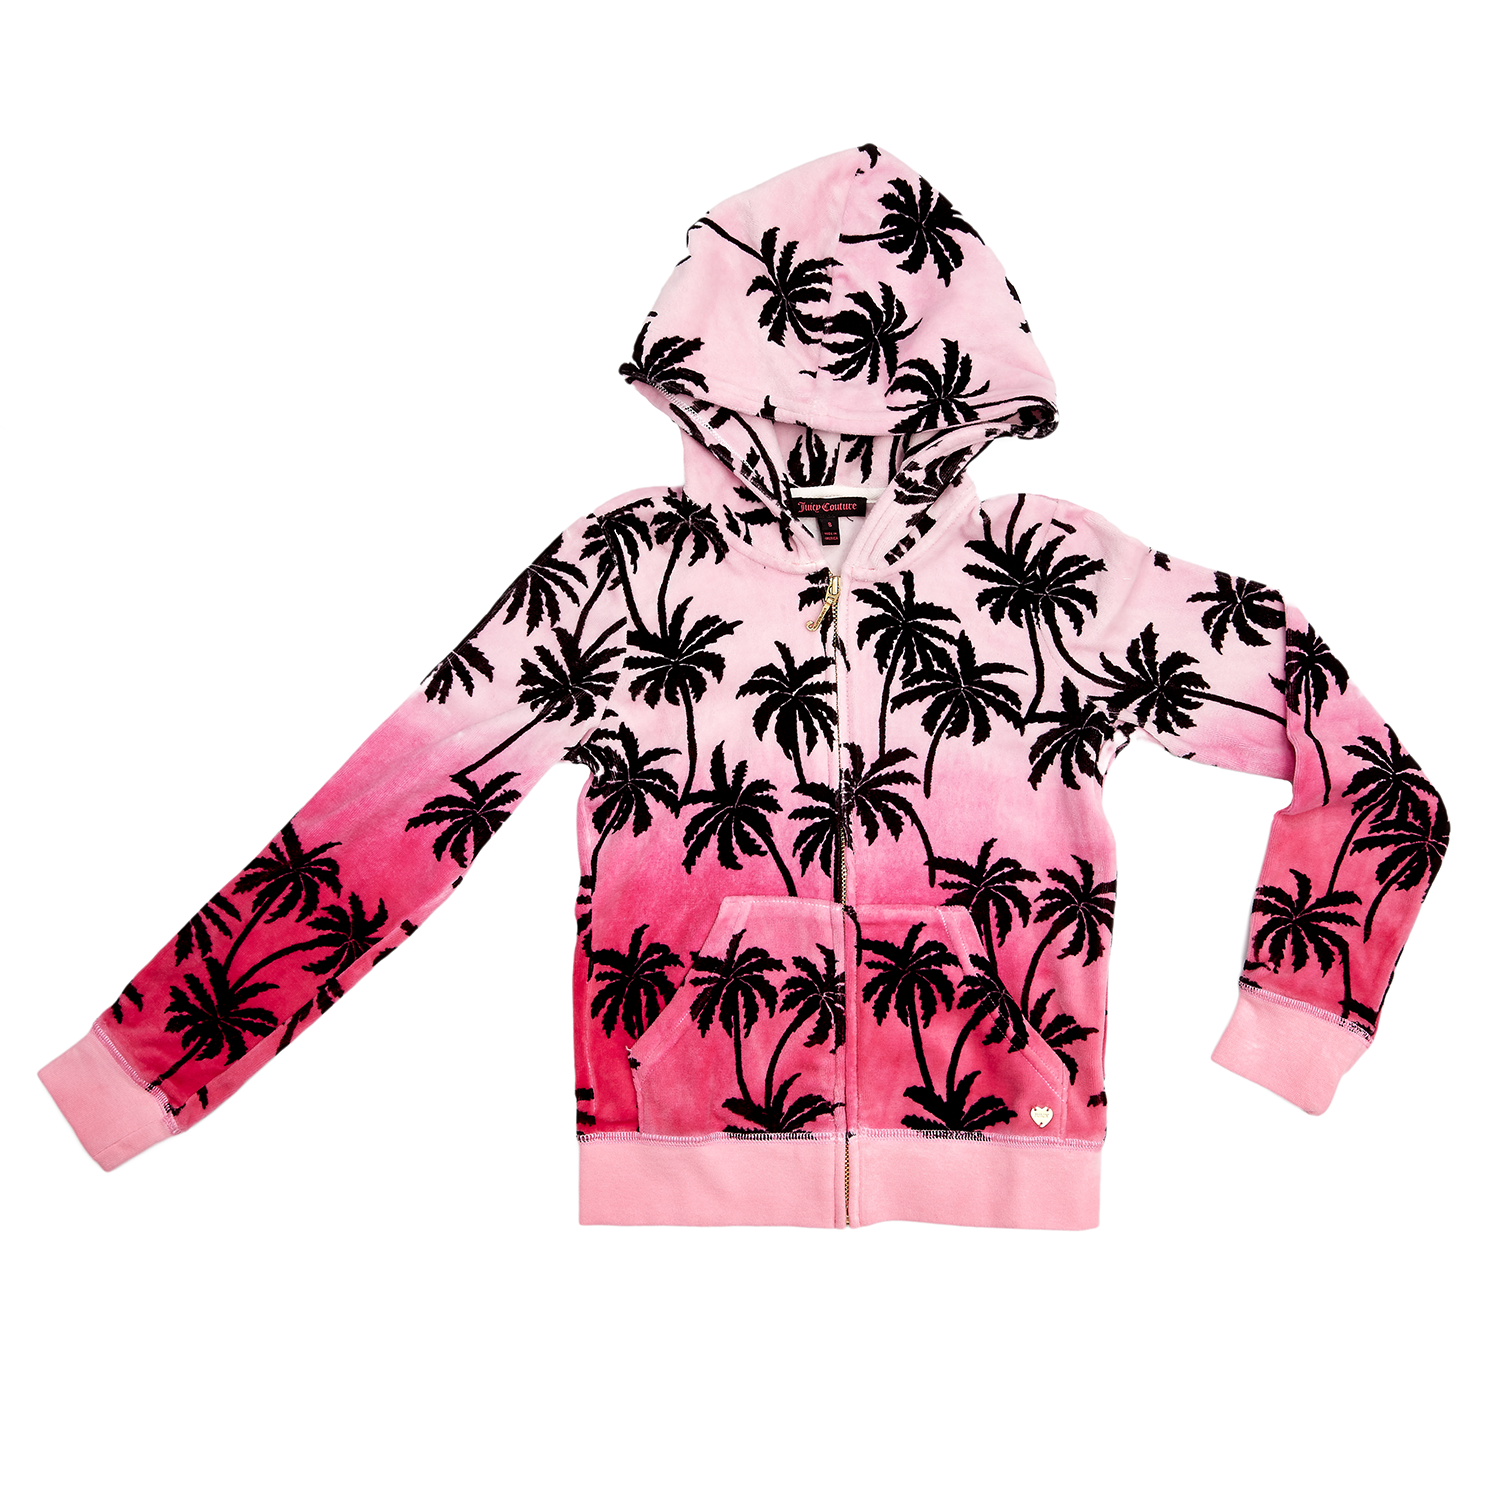 JUICY COUTURE KIDS - Παιδική ζακέτα JUICY COUTURE φούξια